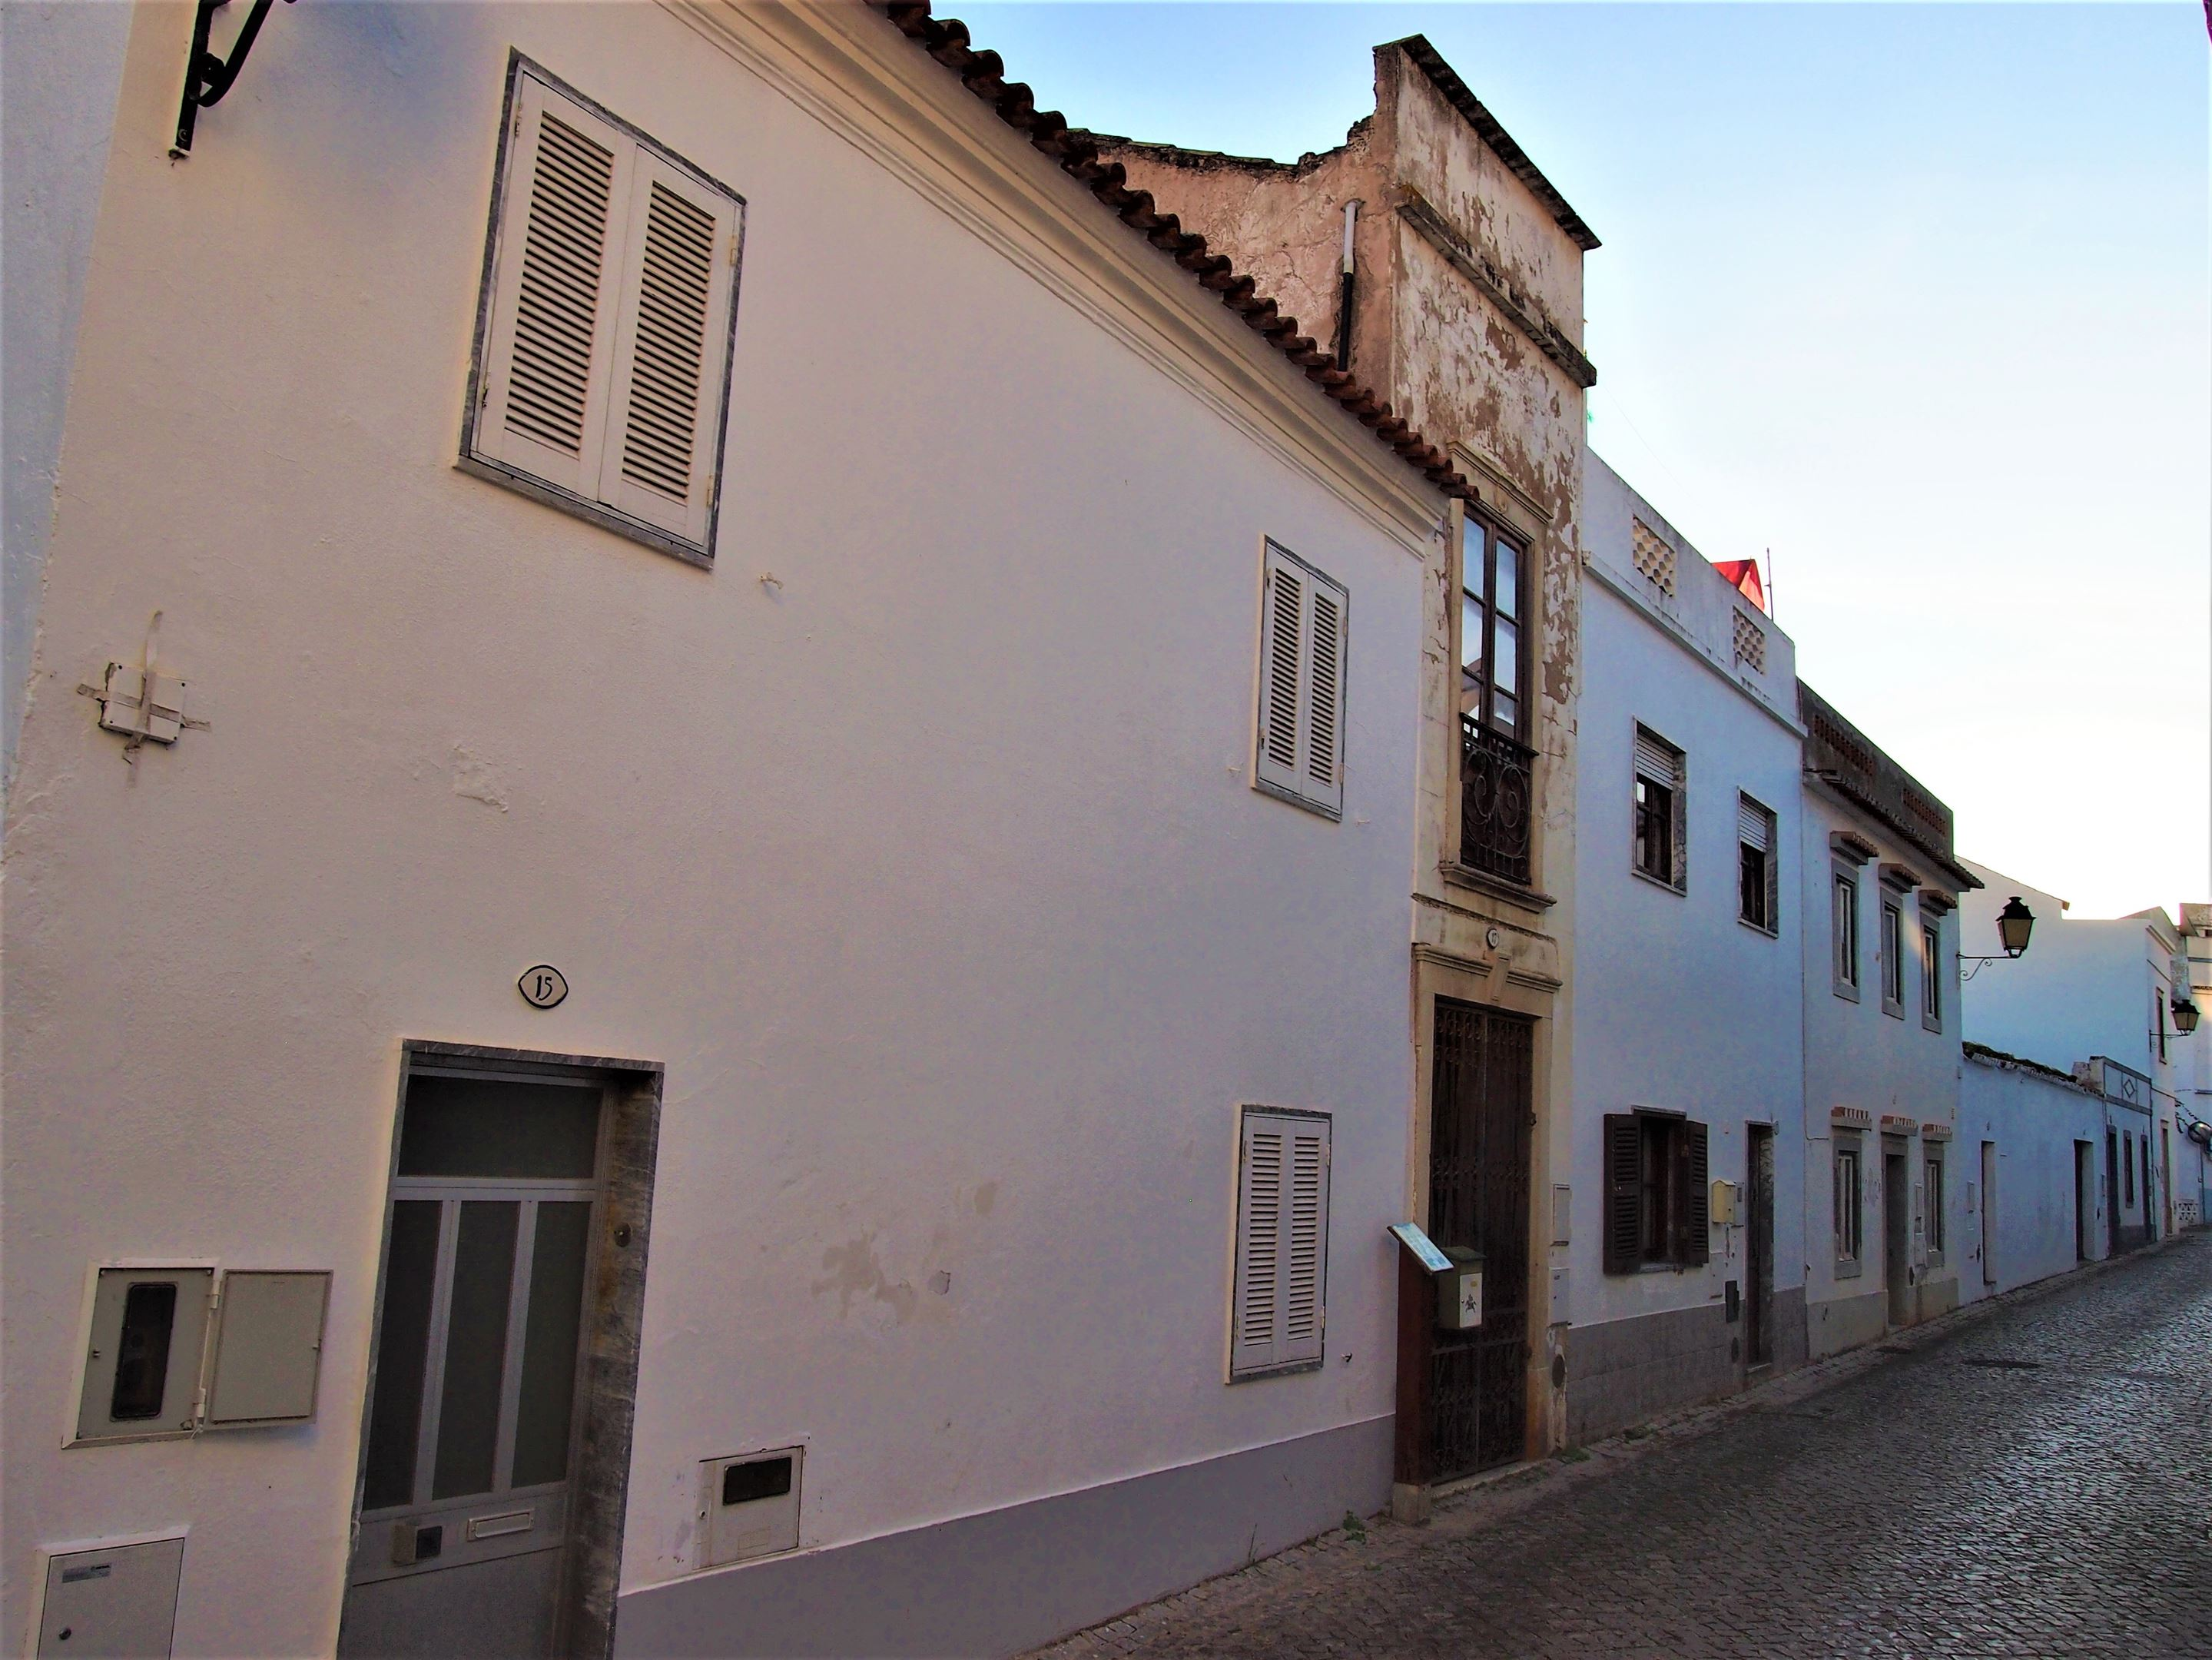 Birthplace of the Poet Cândido Guerreiro, Alte, Algarve